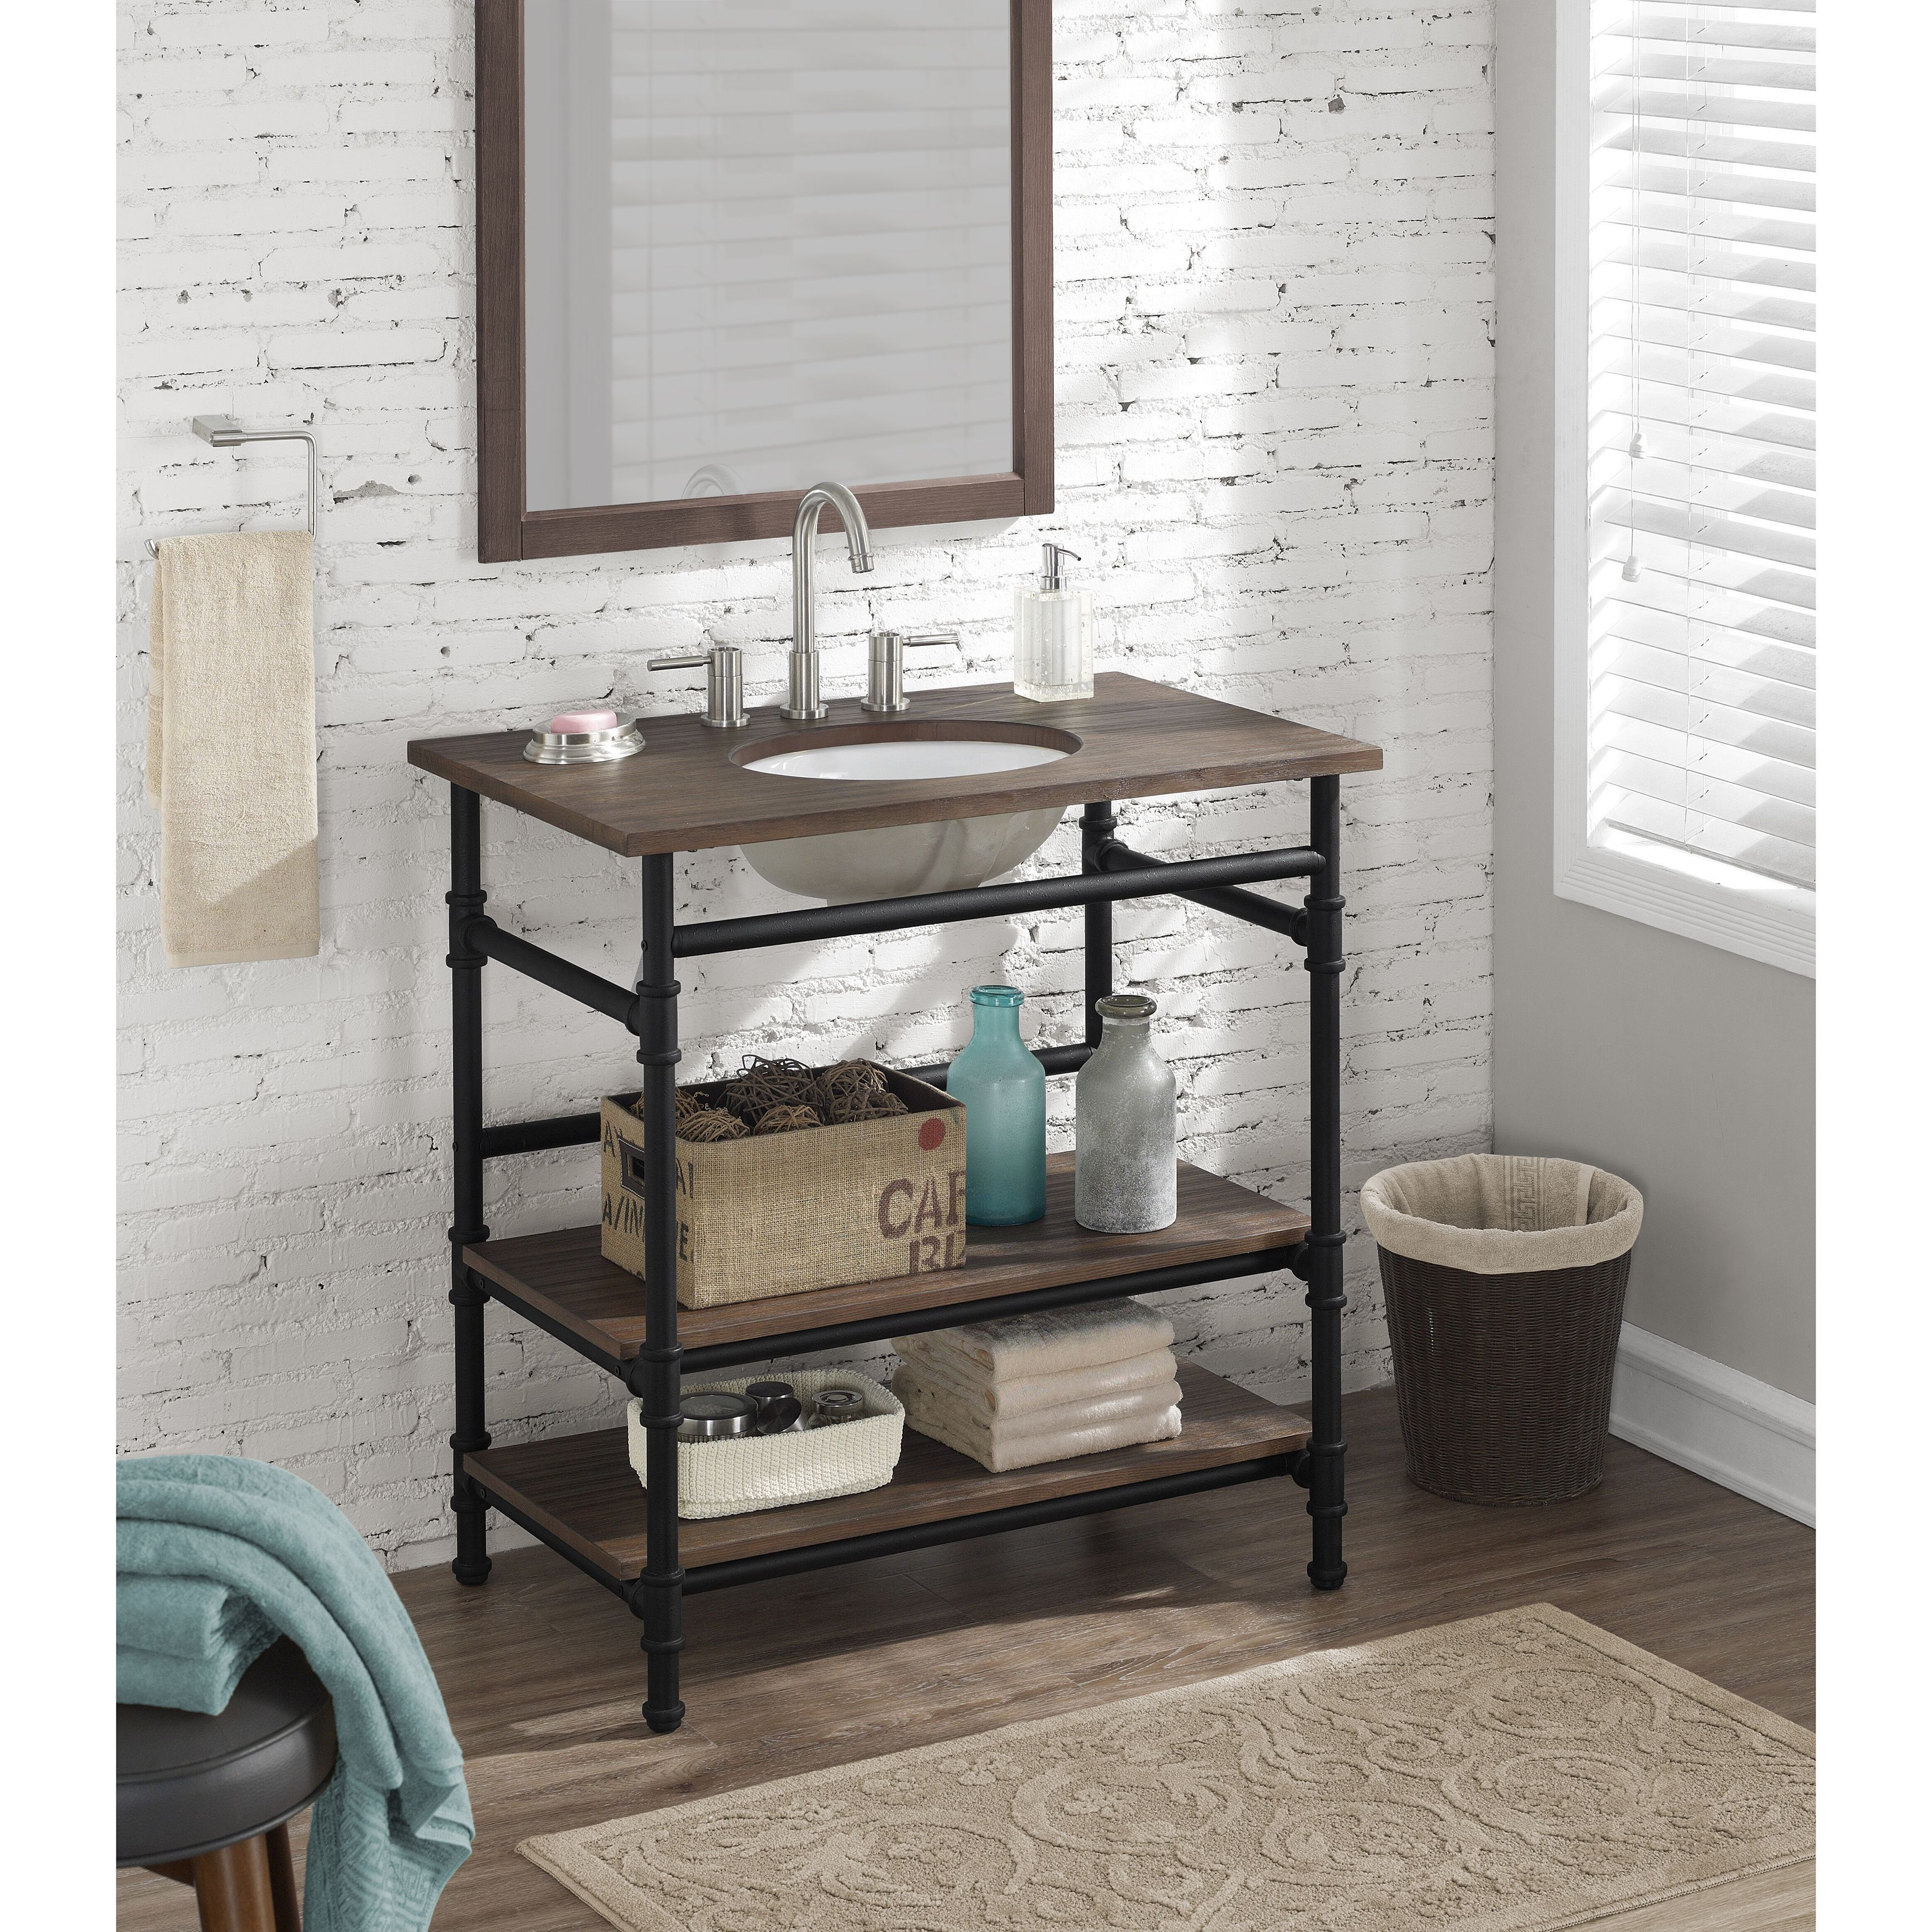 Rustic yet refined this bathroom vanity will add an